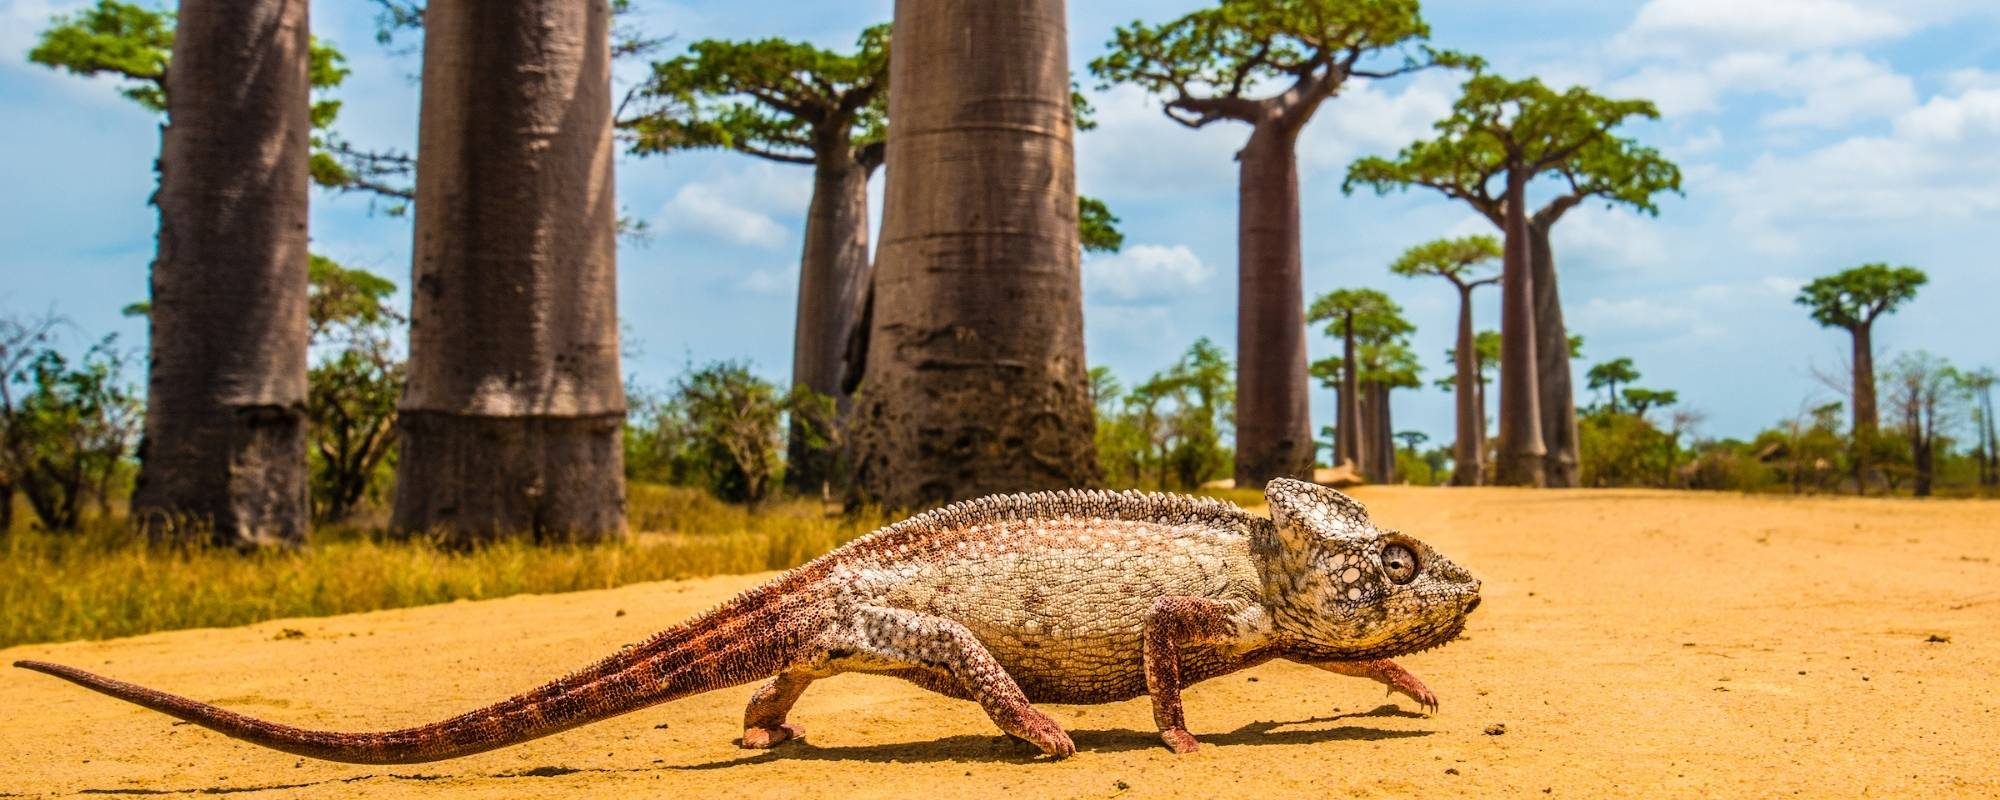 Giant Malagasy Chameleon crossing road in front of Baobab Alley by Shannon Wild